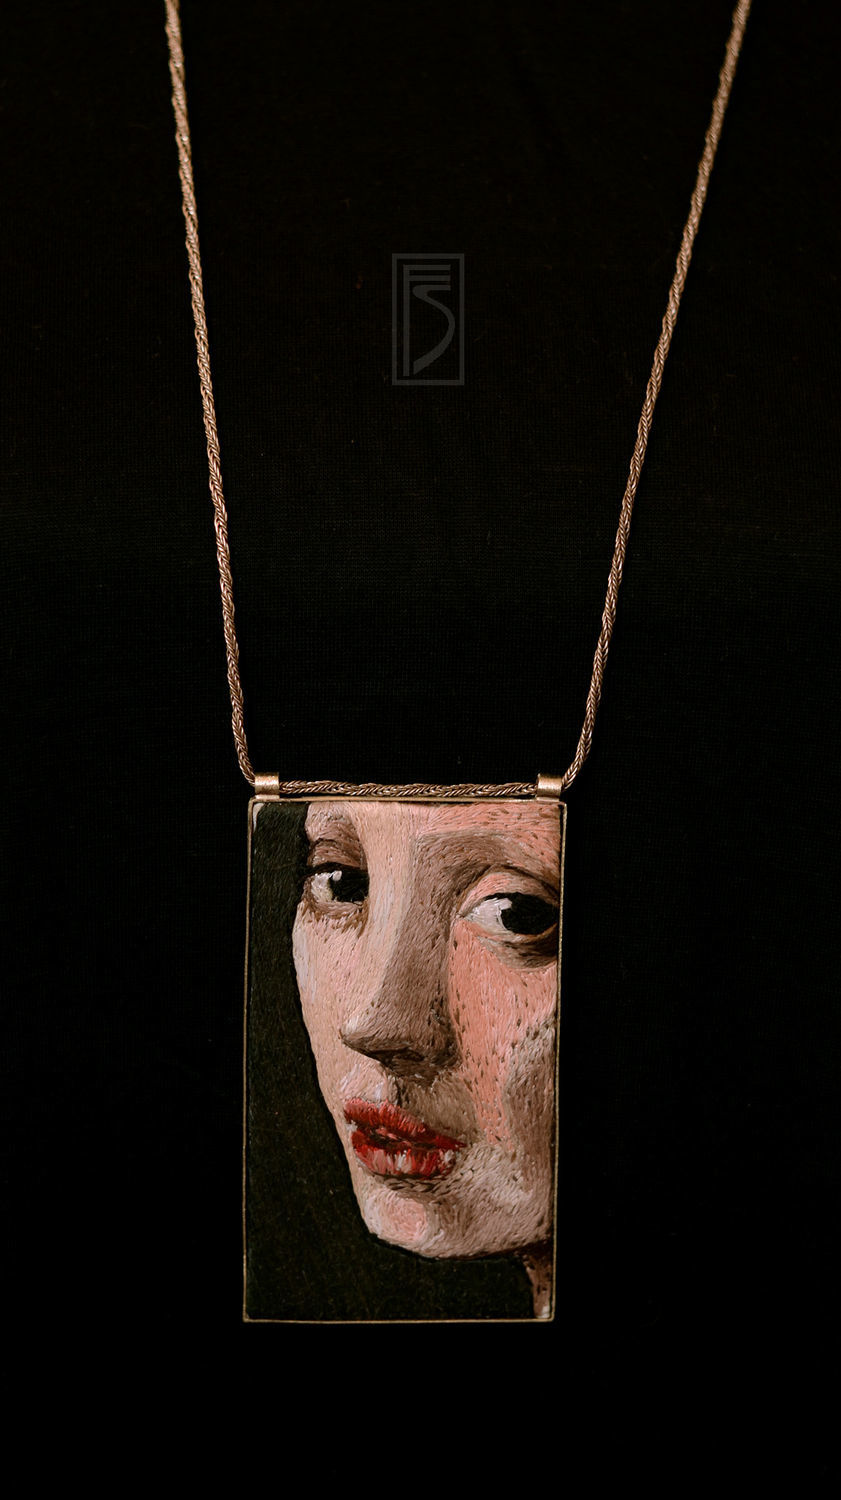 embroidered pendant the Vermeer series 'fragments', Pendants, Khmelnitsky,  Фото №1